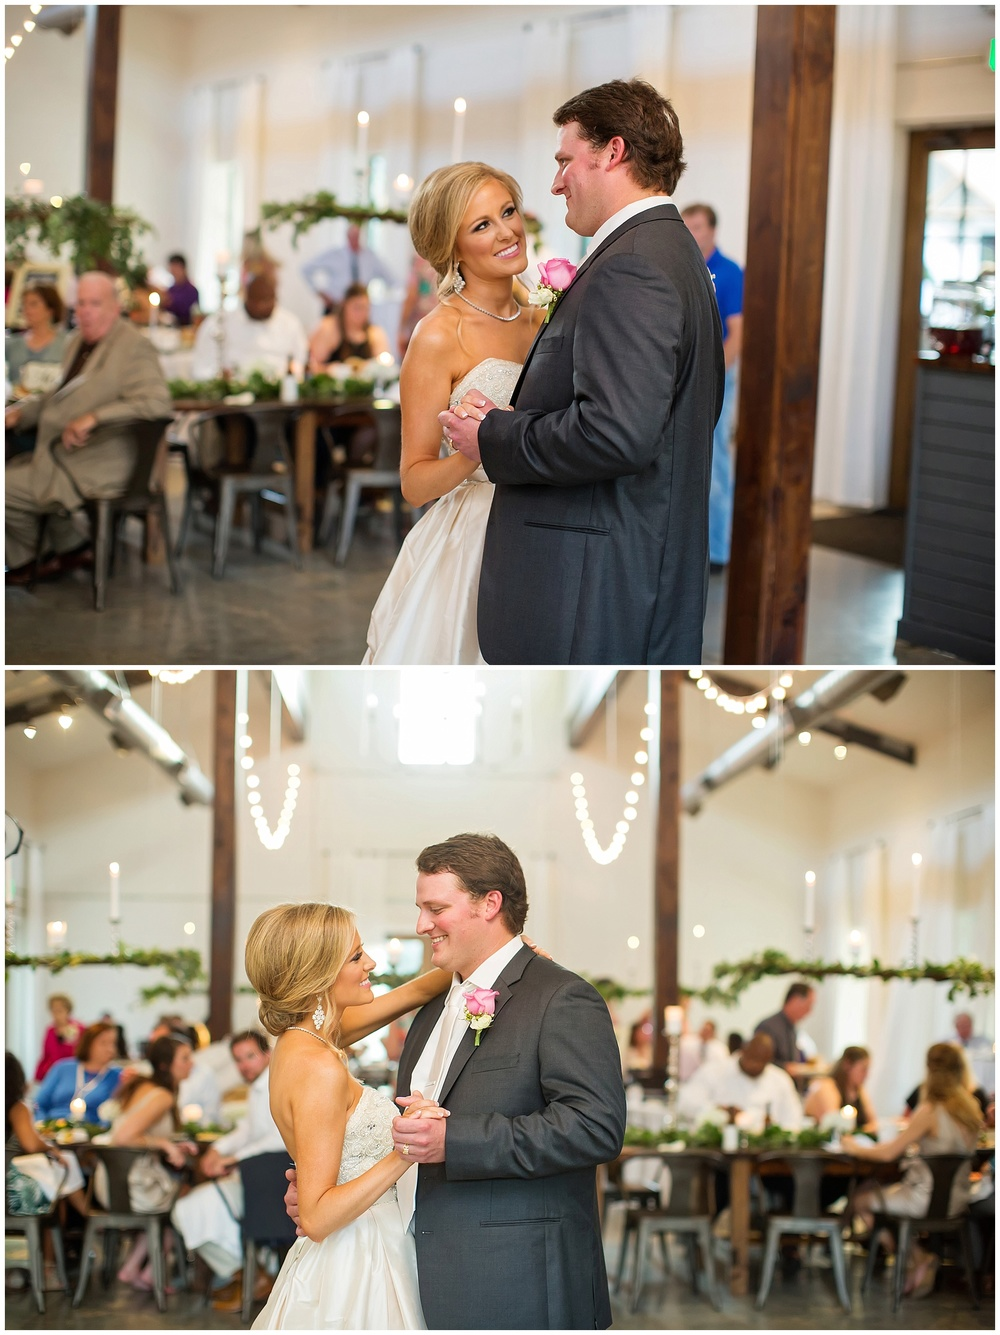 LittleRock-Arkansas-Wedding-26.jpg